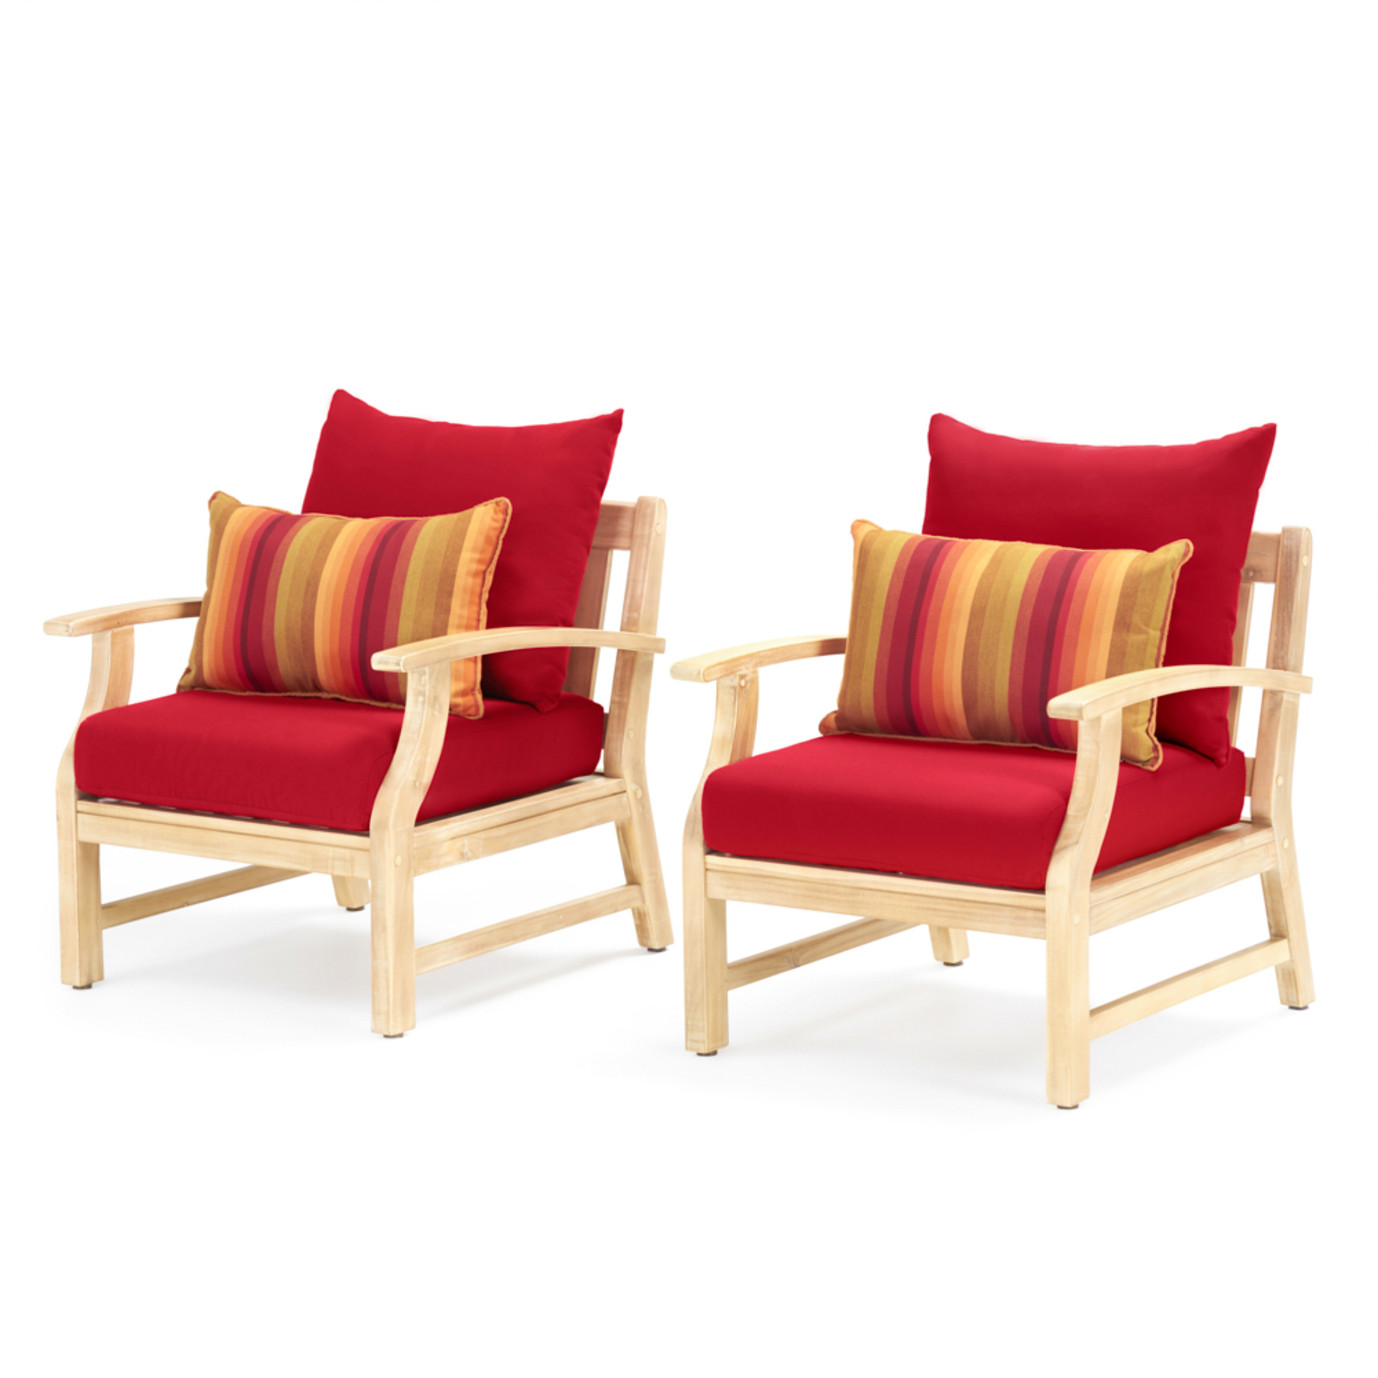 Kooper Club Chairs - Sunset Red